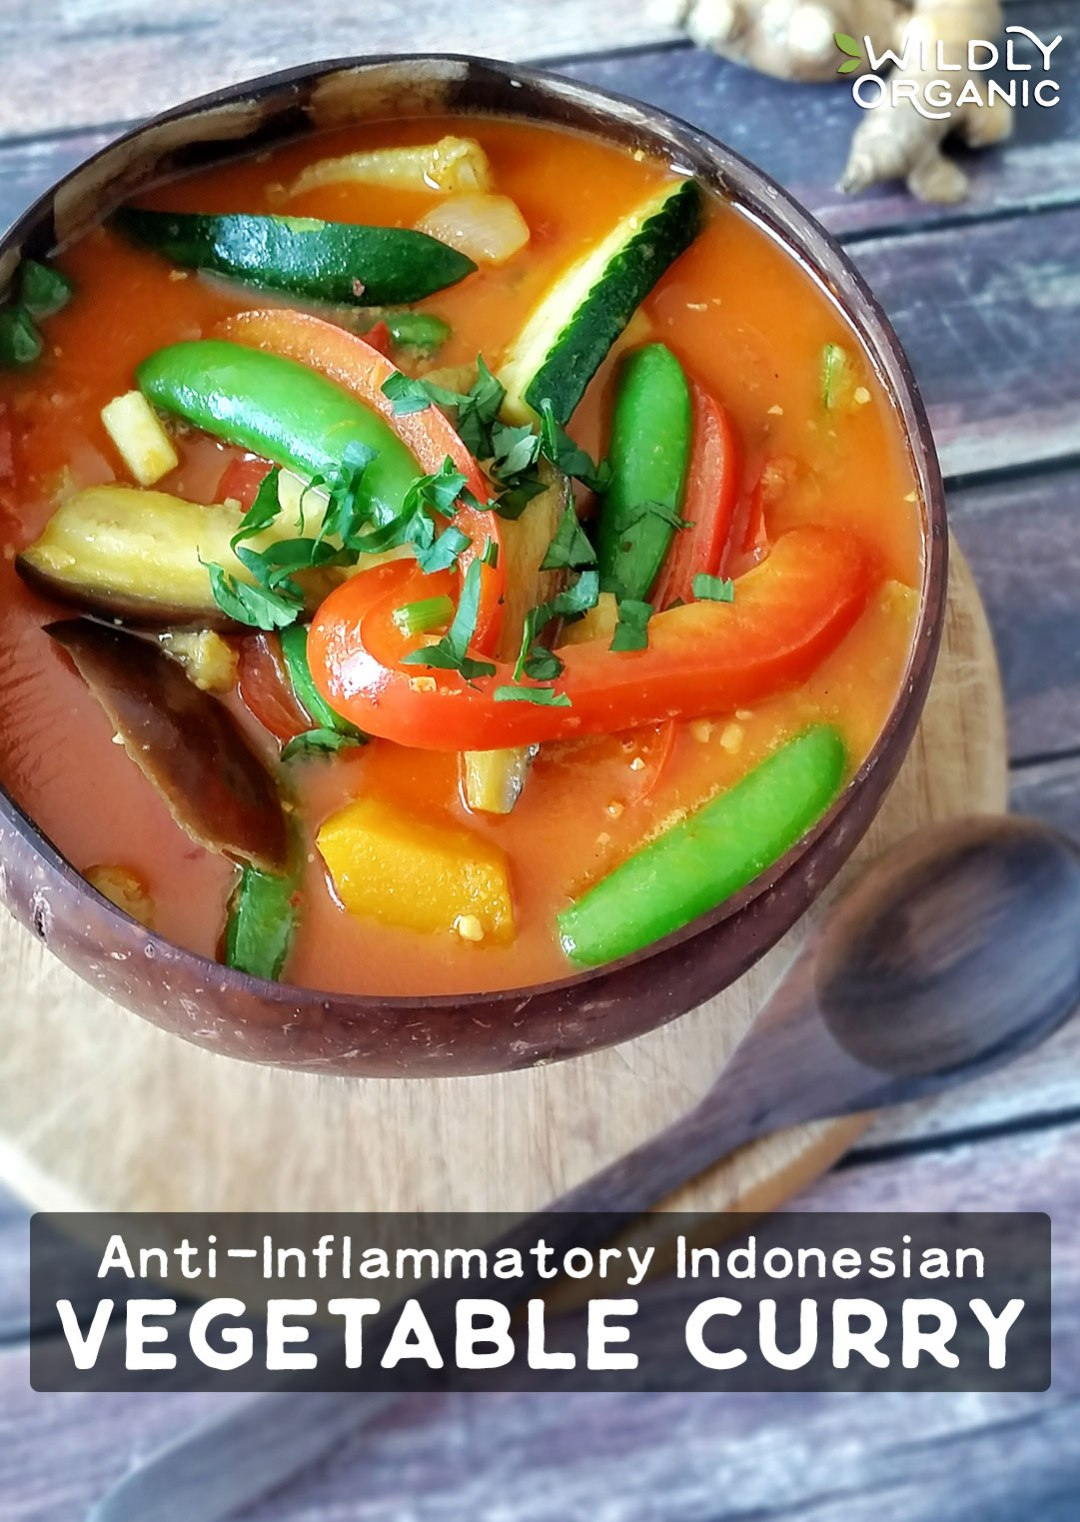 Anti-Inflammatory Indonesian Vegetable Curry | Inspired by a recent trip to Bali, one of our Wildly Organic writers recreated an authentic Anti-Inflammatory Indonesian Vegetable Curry! This Paleo and vegan main dish contains the anti-inflammatory trio: turmeric, black pepper, and coconut! | WildlyOrganic.com